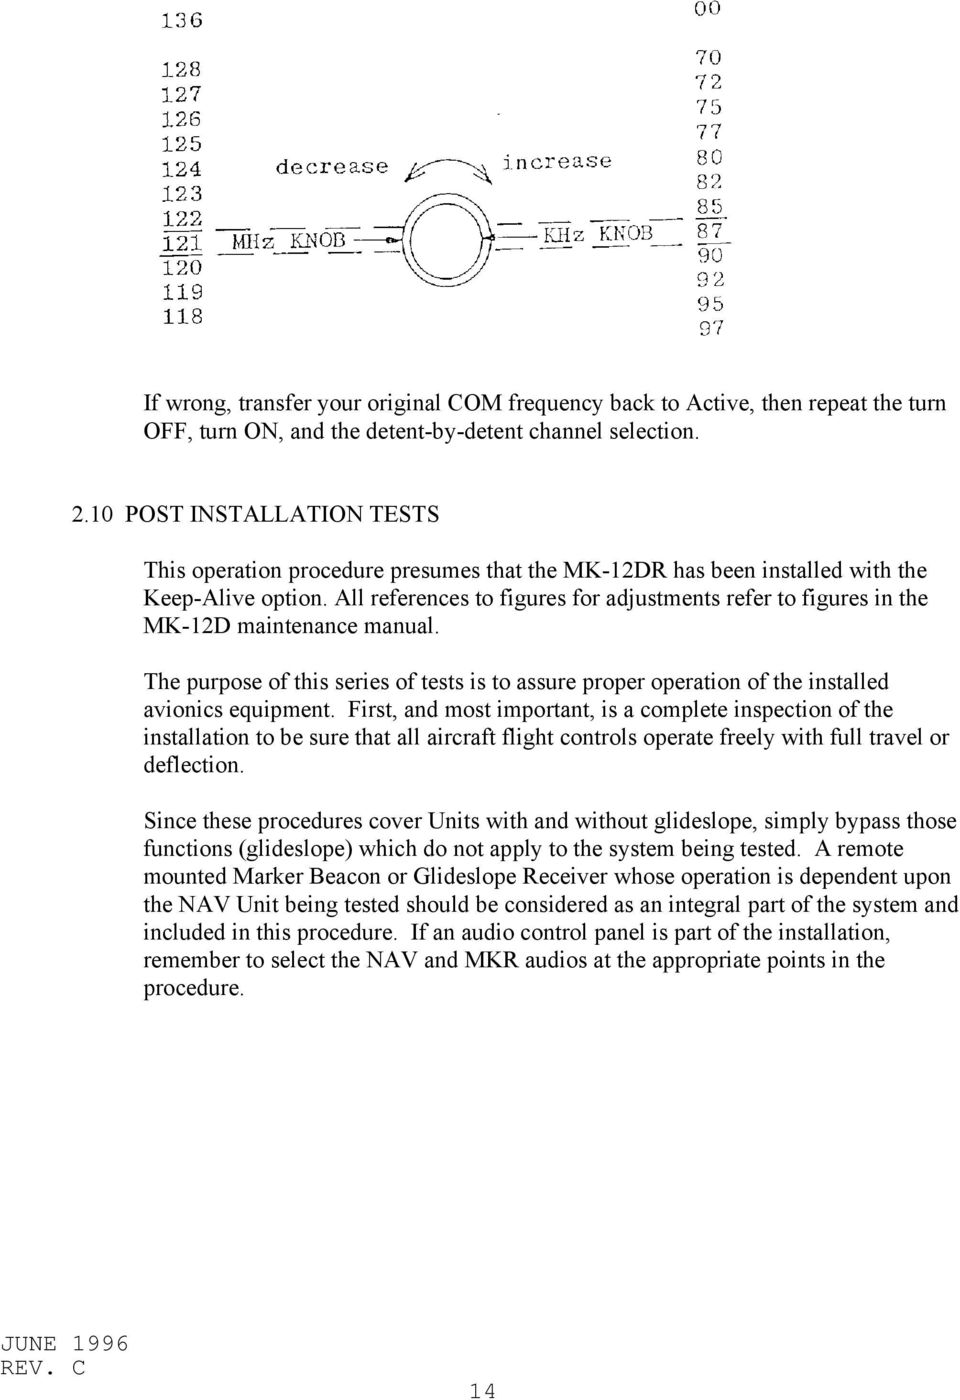 Mk12d Tso Mk12 Mk12a Mk12b Replacement Radio Pdf Wiring Diagram Manual Kx 155 All References To Figures For Adjustments Refer In The Mk 12d Maintenance